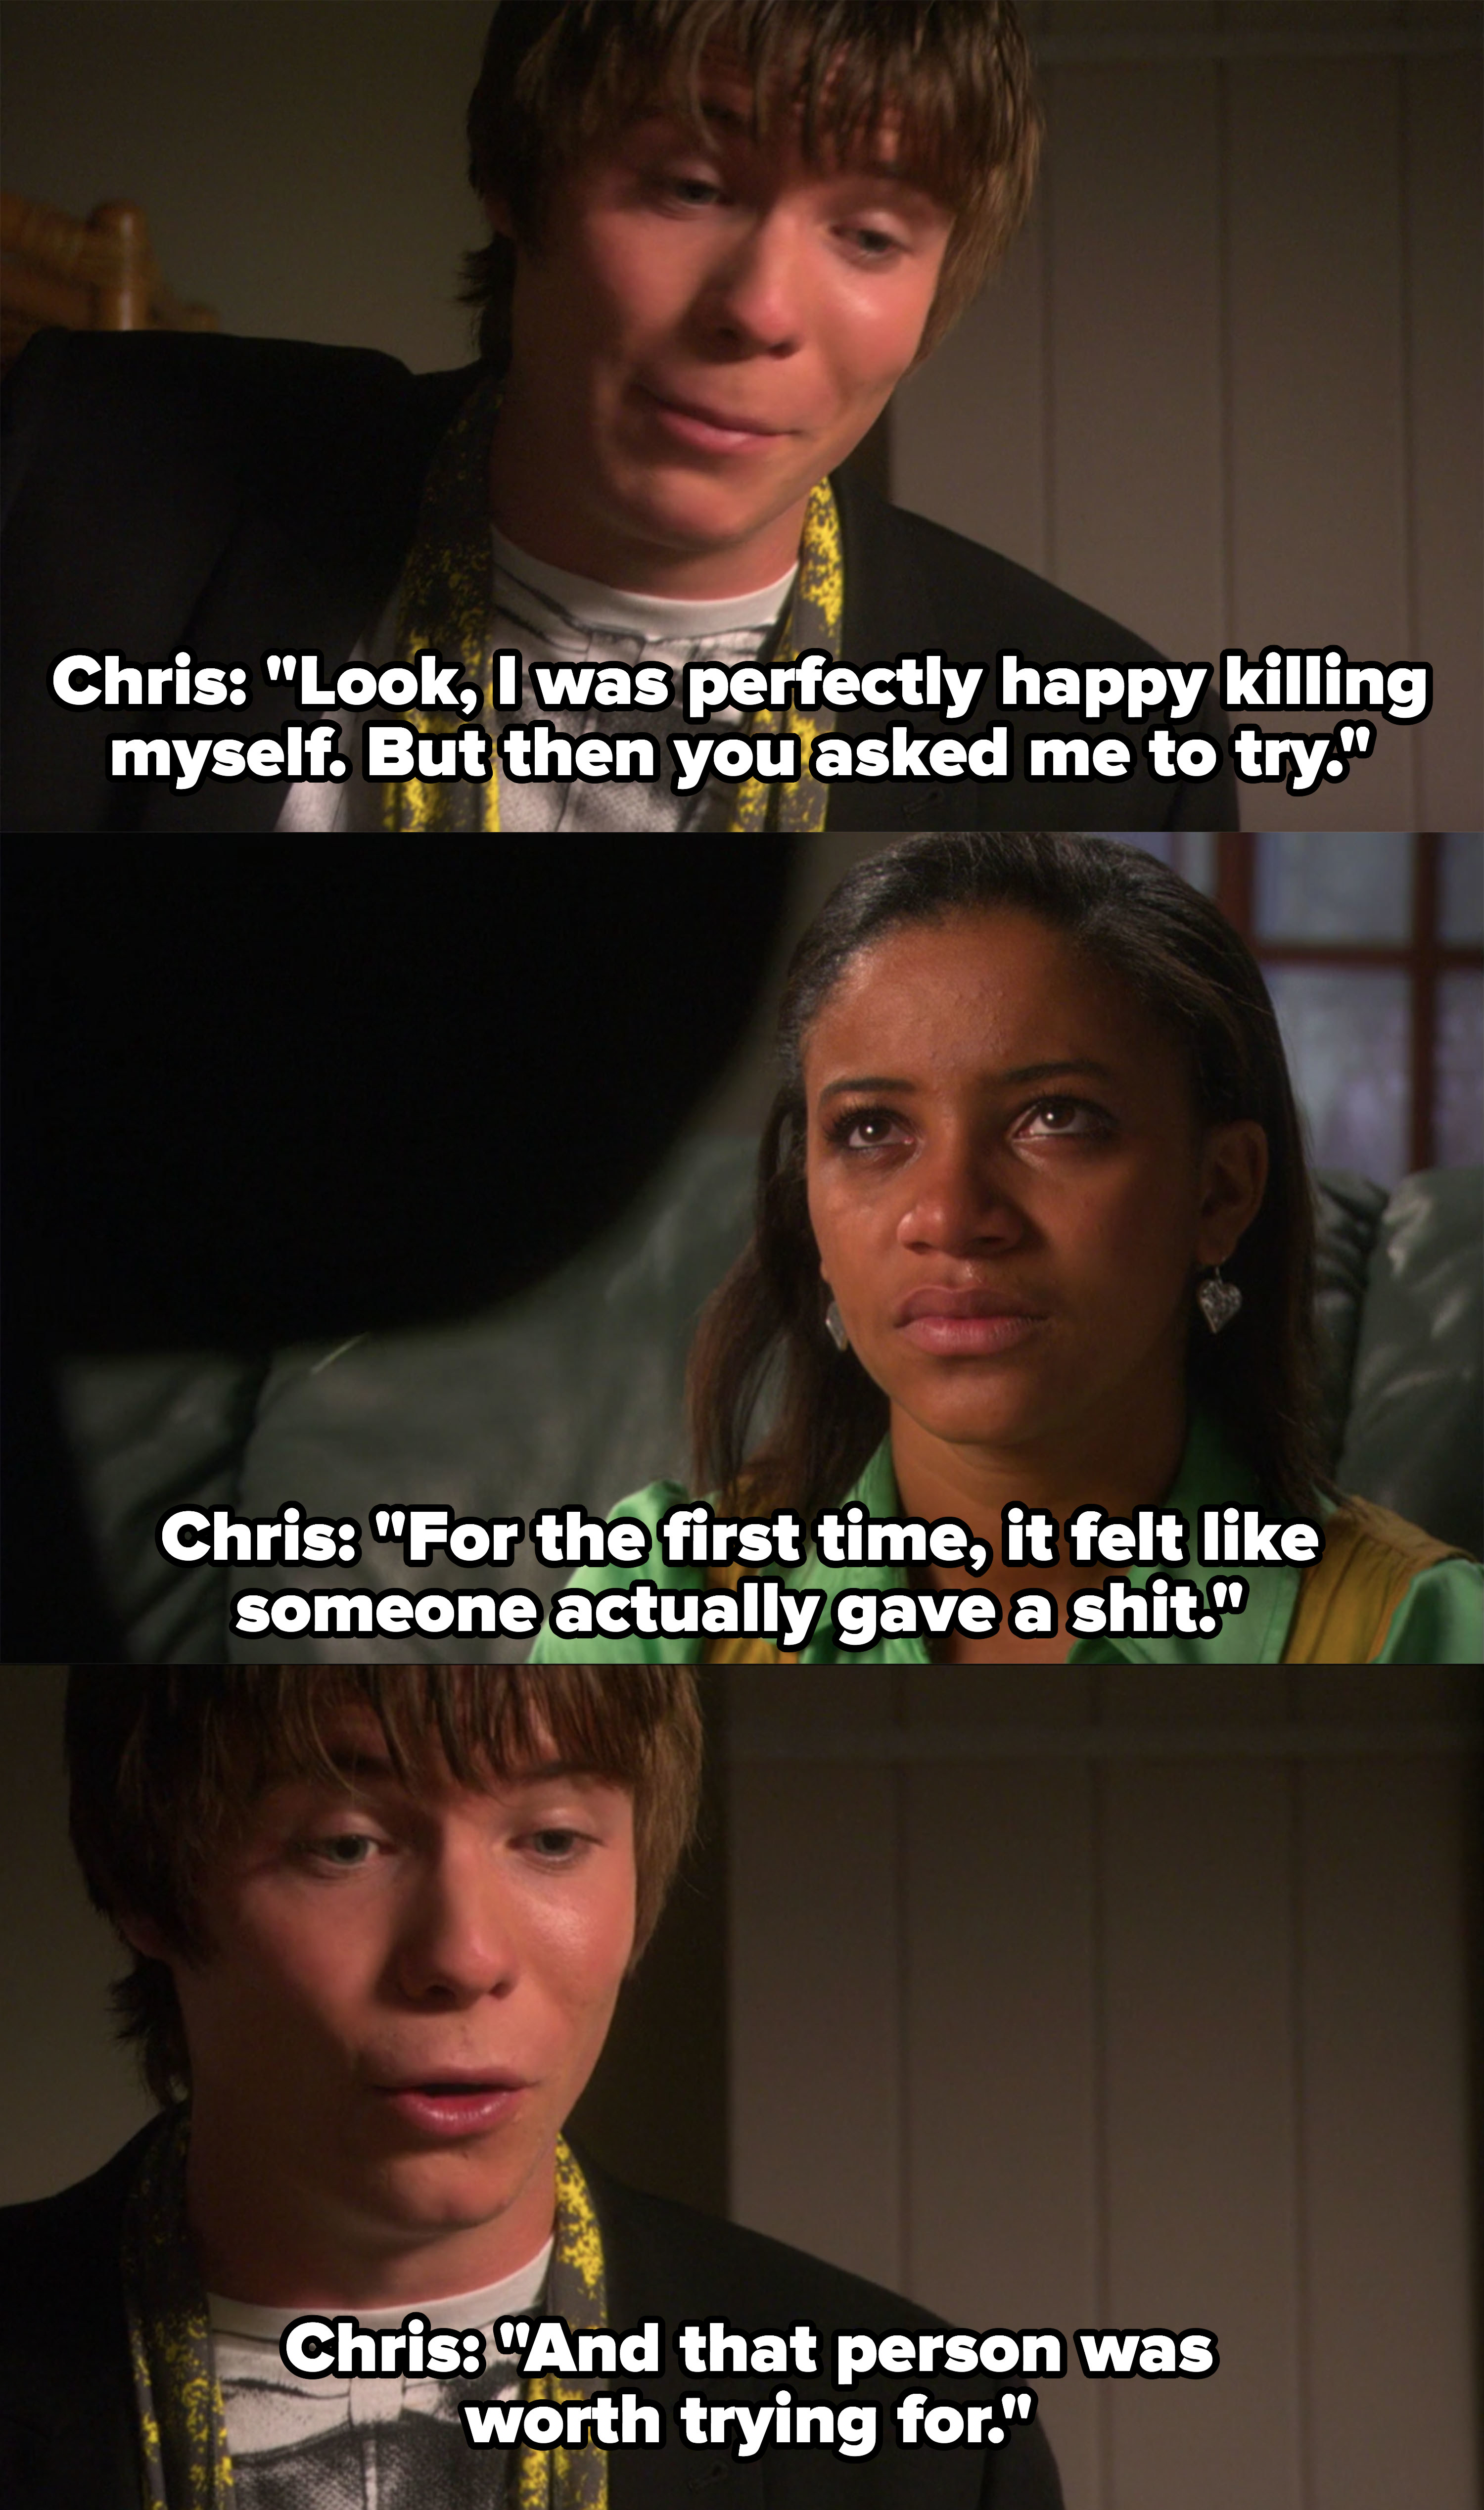 """Chris says he was """"perfectly happy killing himself,"""" but then Jal asked him to try and she was worth trying for"""